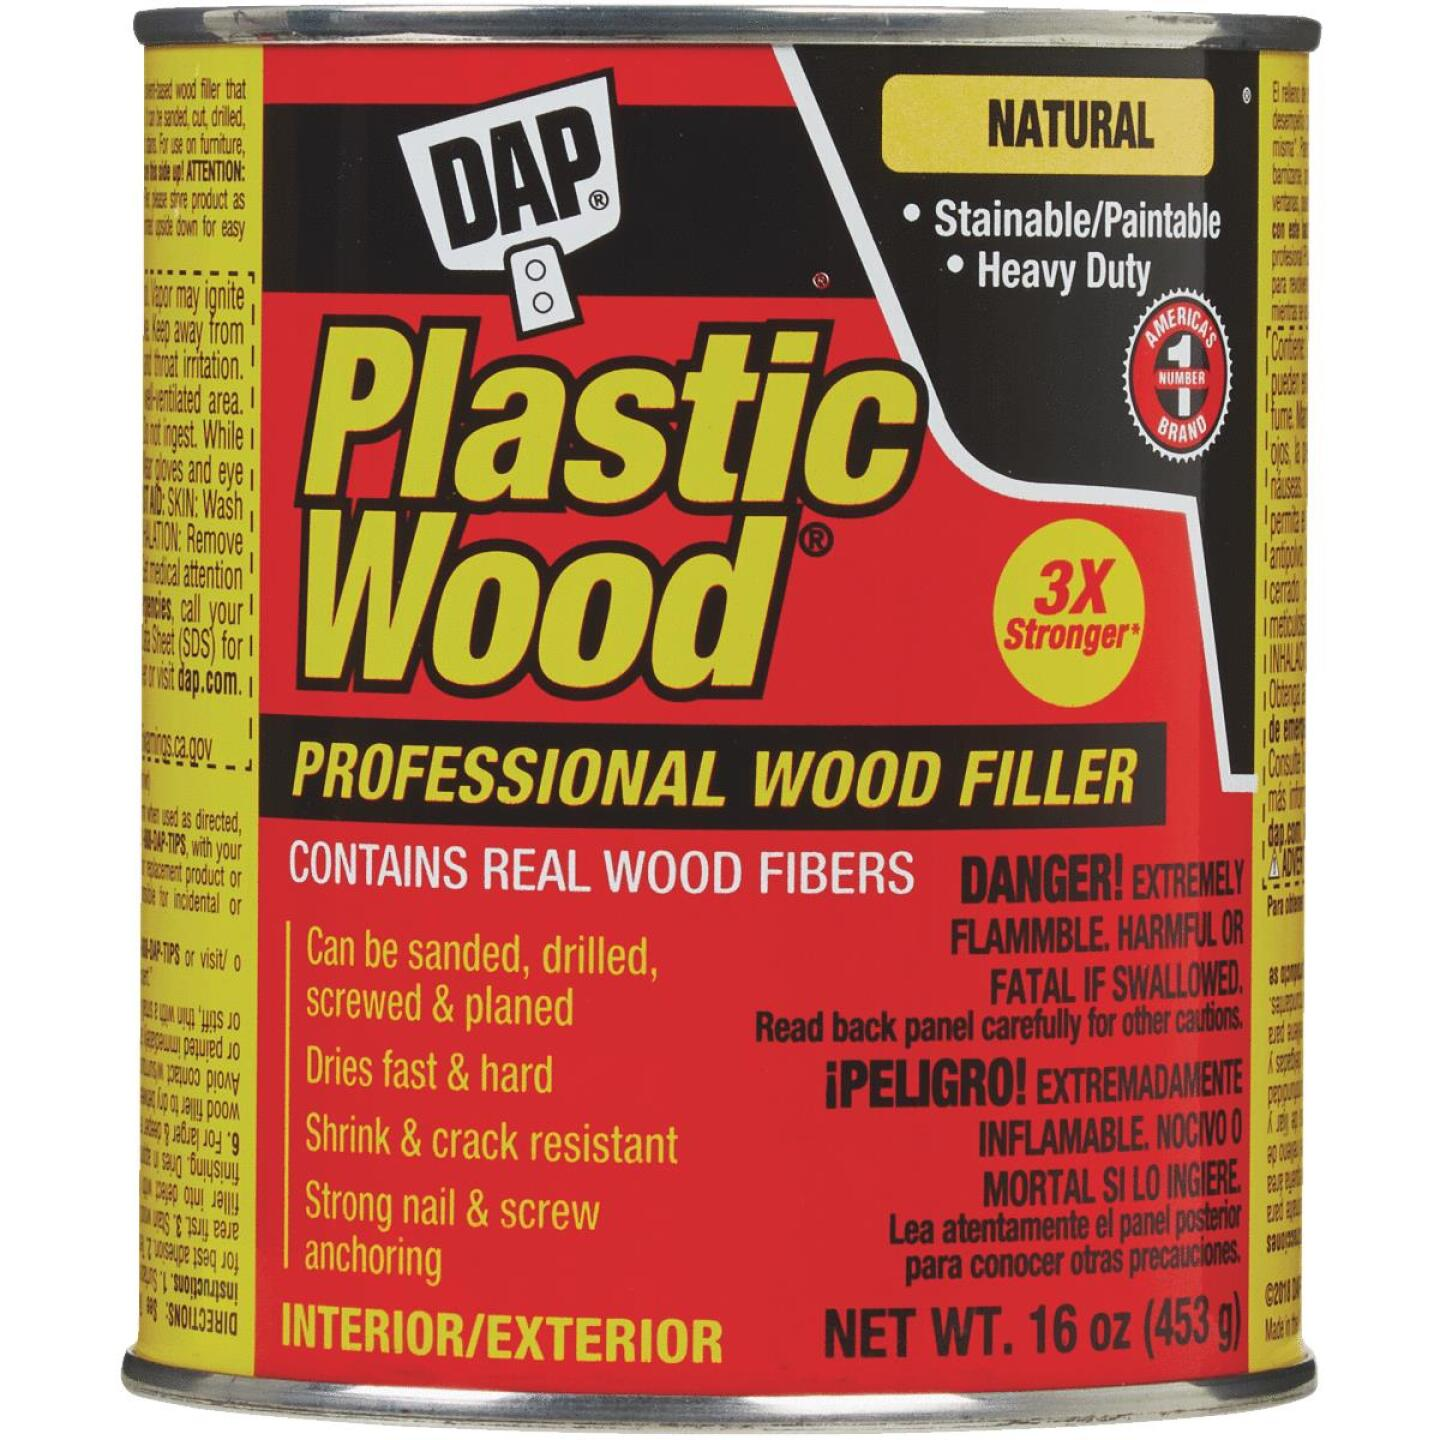 DAP Plastic Wood 16 Oz. Natural Solvent Professional Wood Filler Image 2